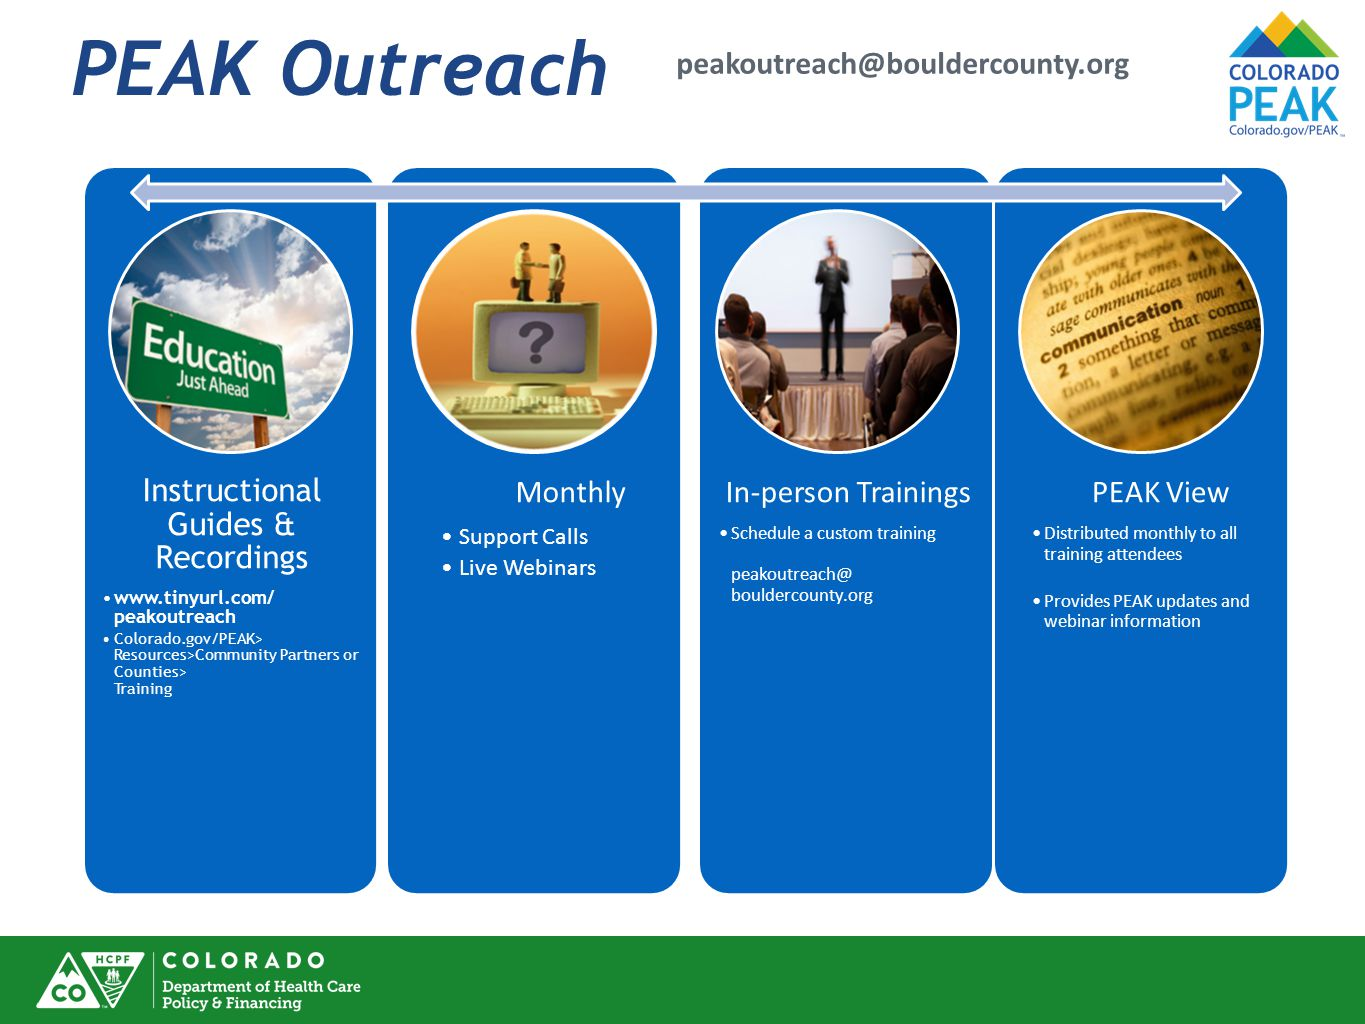 Instructional Guides & Recordings www.tinyurl.com/ peakoutreach Colorado.gov/PEAK> Resources>Community Partners or Counties> Training Monthly Support Calls Live Webinars In-person Trainings Schedule a custom training peakoutreach@ bouldercounty.org PEAK View Distributed monthly to all training attendees Provides PEAK updates and webinar information peakoutreach@bouldercounty.org PEAK Outreach